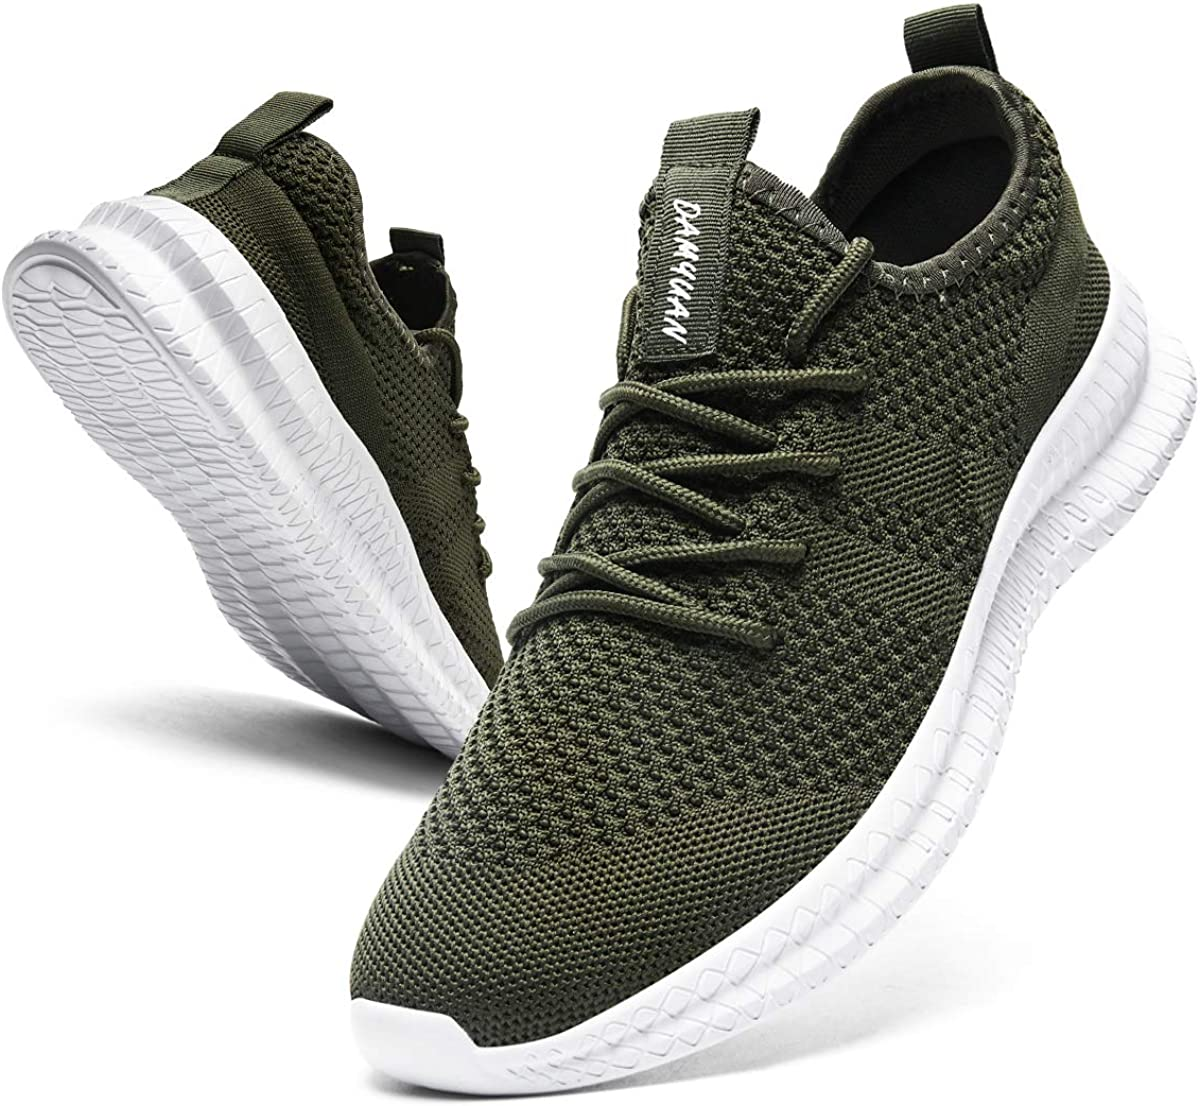 SEAL limited product Max 46% OFF FUJEAK Men Running Shoes Breathable Spo Casual Walking